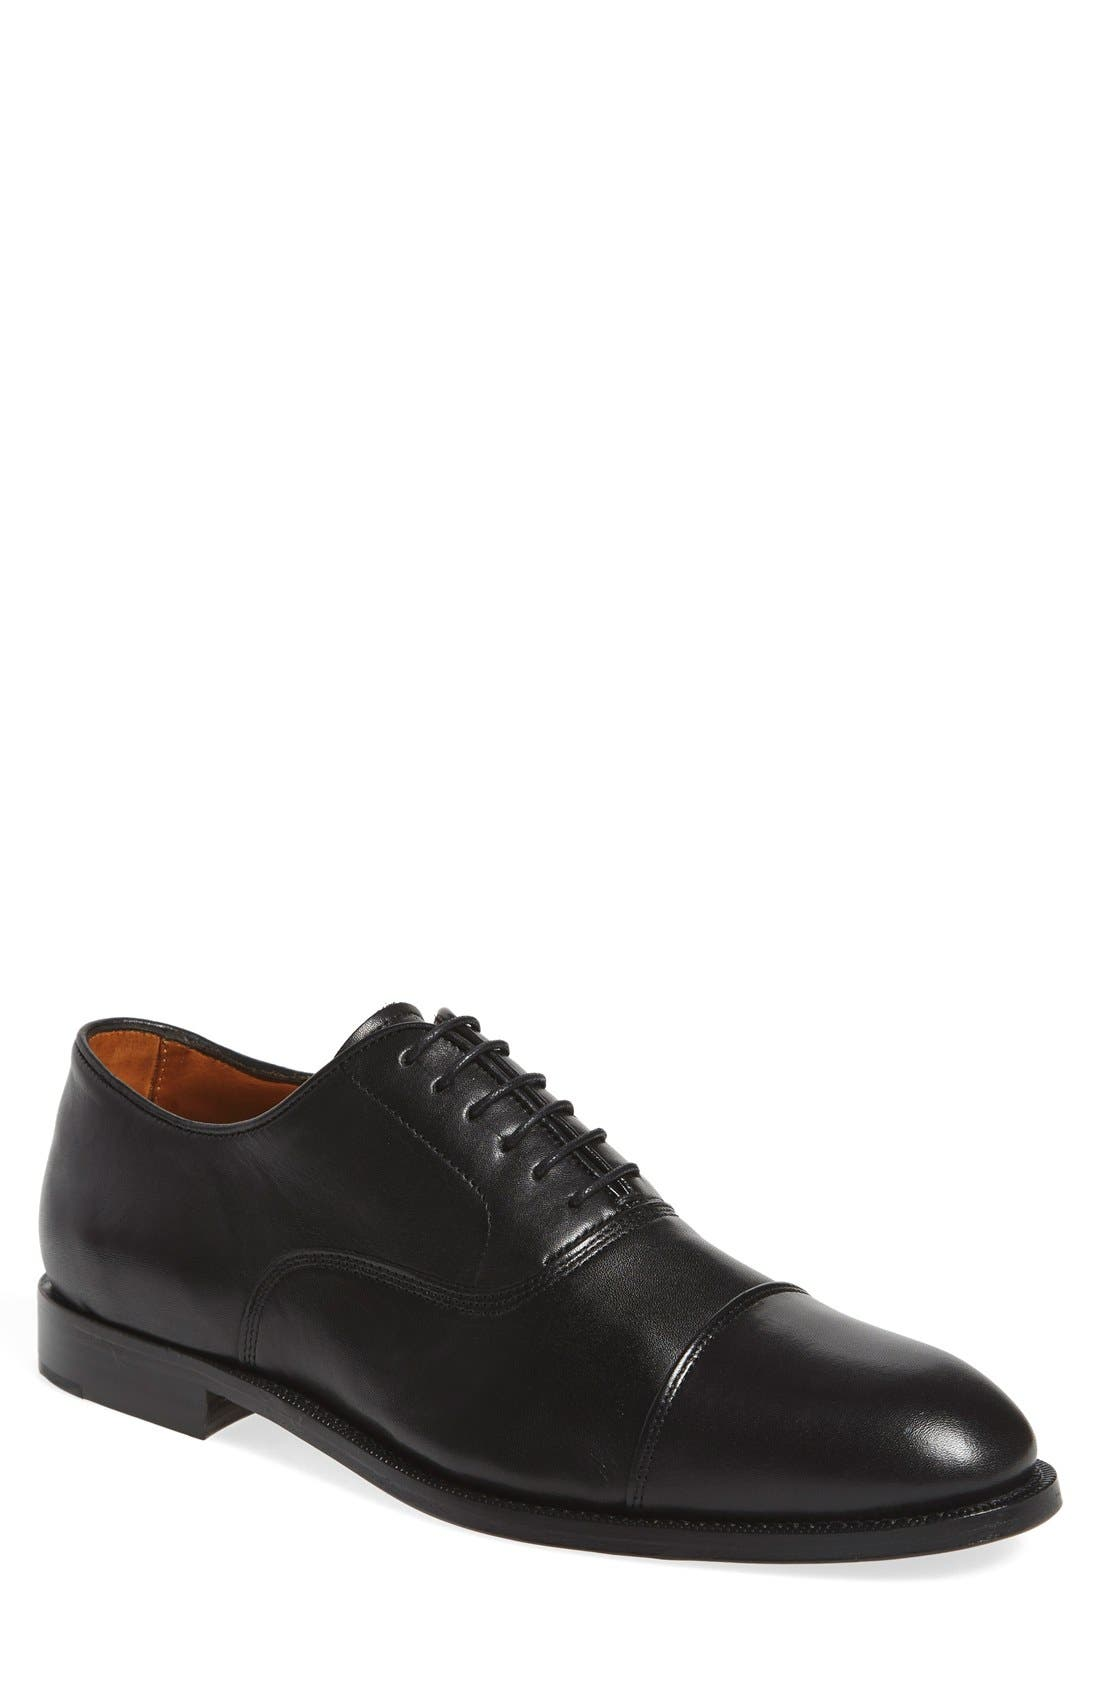 'Eeric' Cap Toe Oxford,                             Main thumbnail 1, color,                             BLACK LEATHER